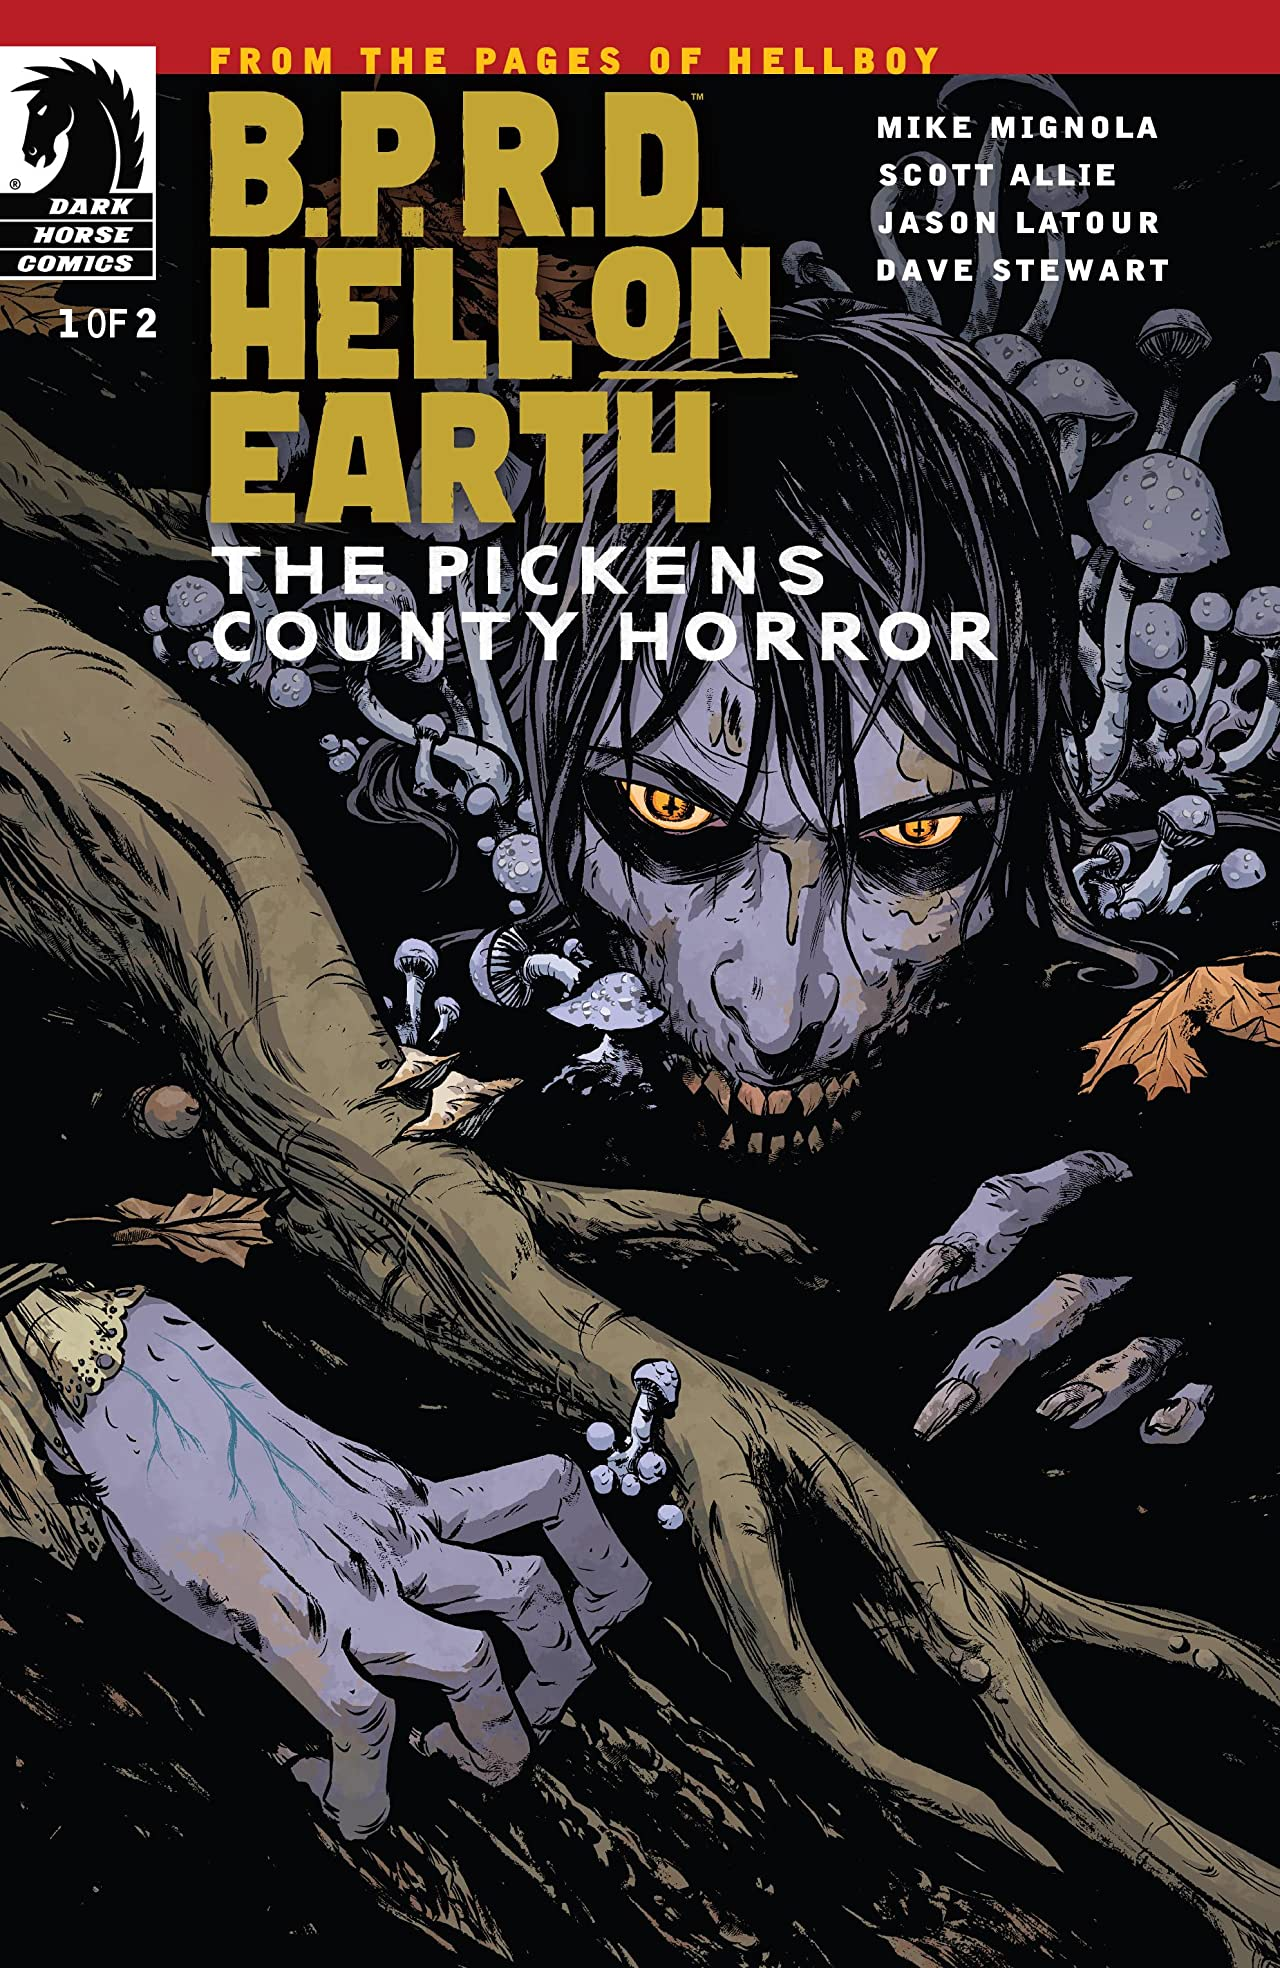 B.P.R.D.: Hell on Earth: The Pickens County Horror #1